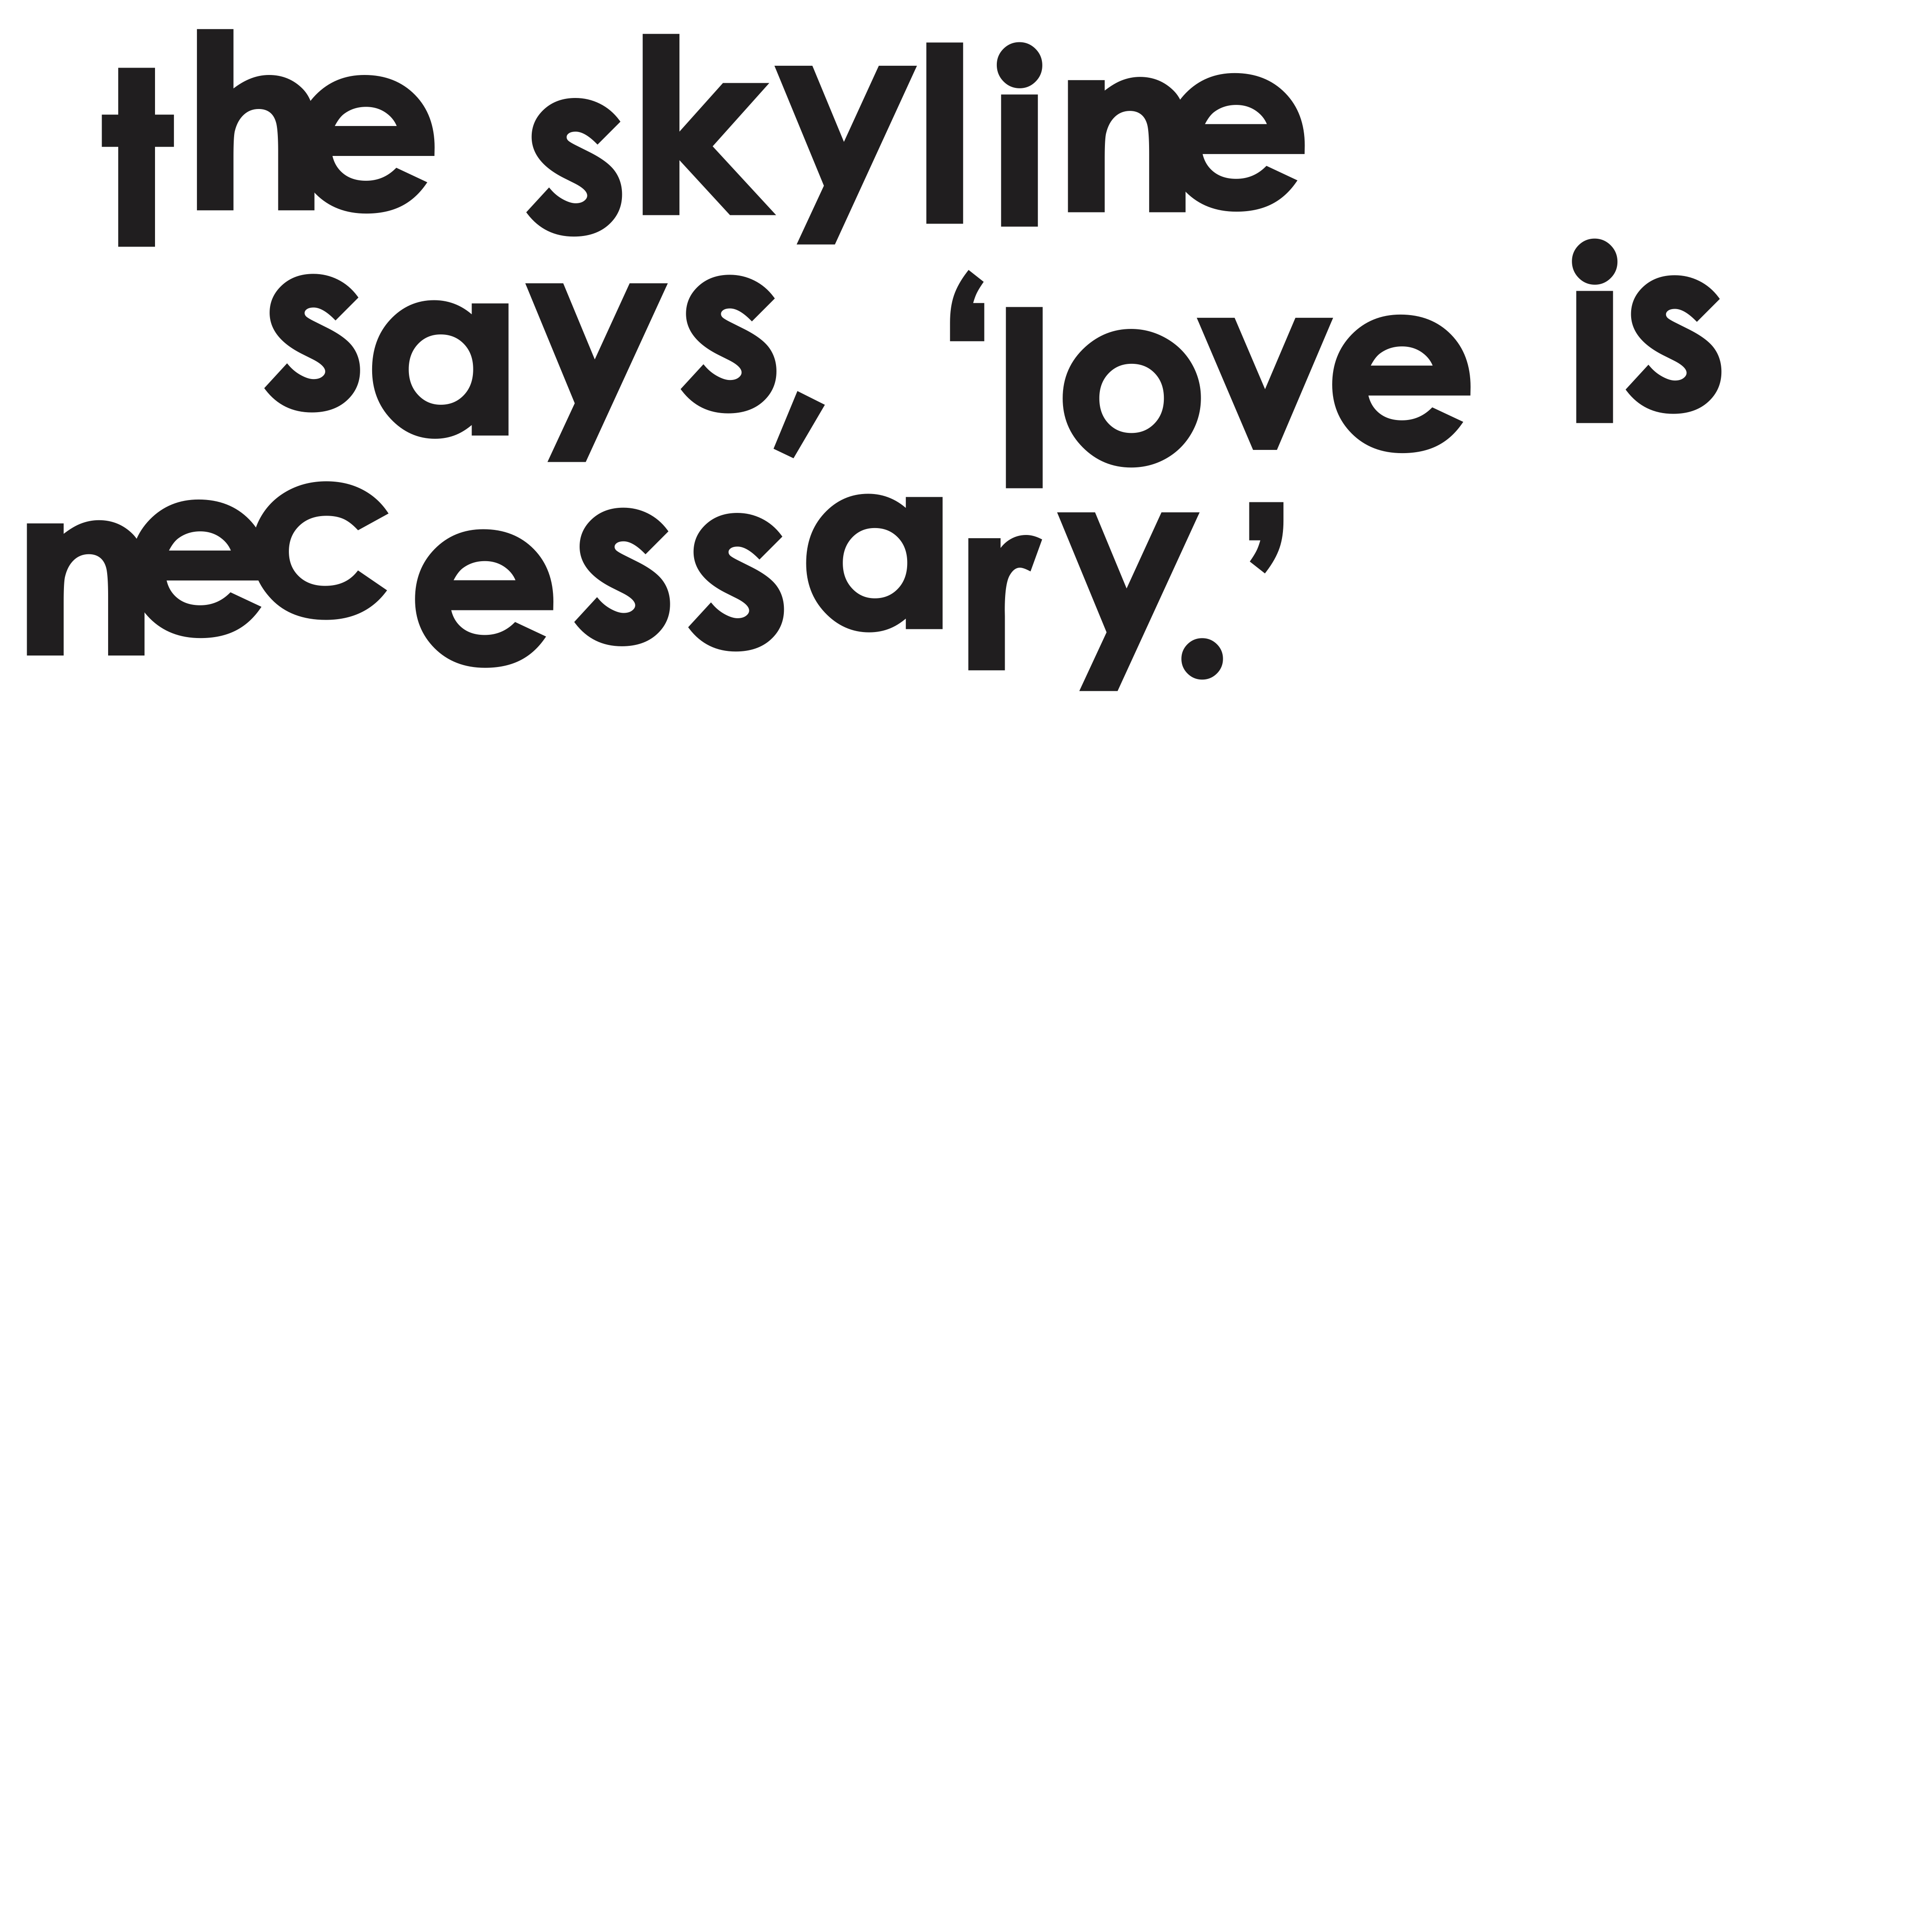 John Most > poems > pieces > 2010 > The Skyline Says Love Is Necessary